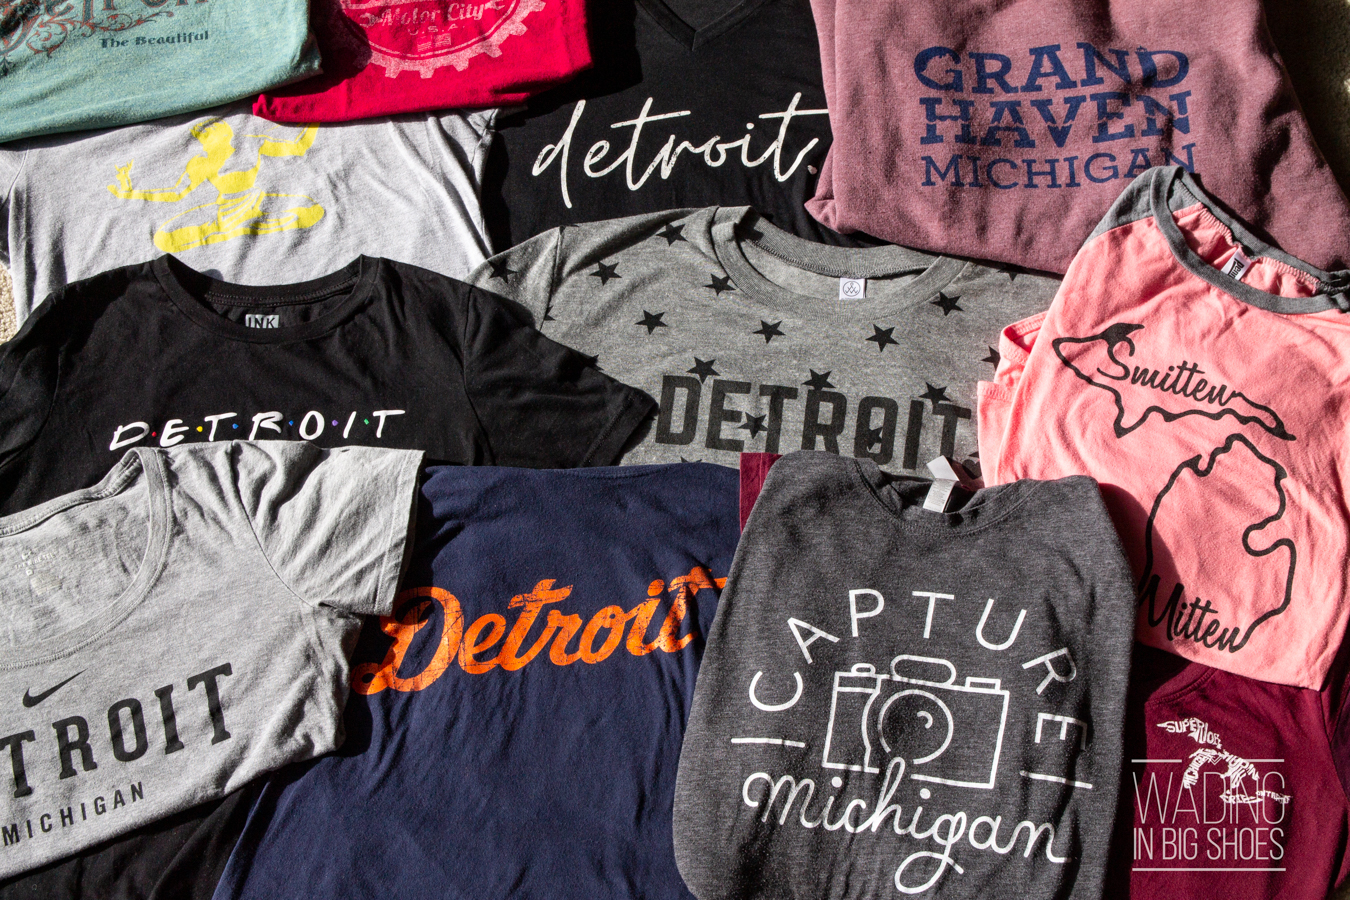 Local Fashion Love: My (Mostly Detroit) Michigan T-Shirt Collection